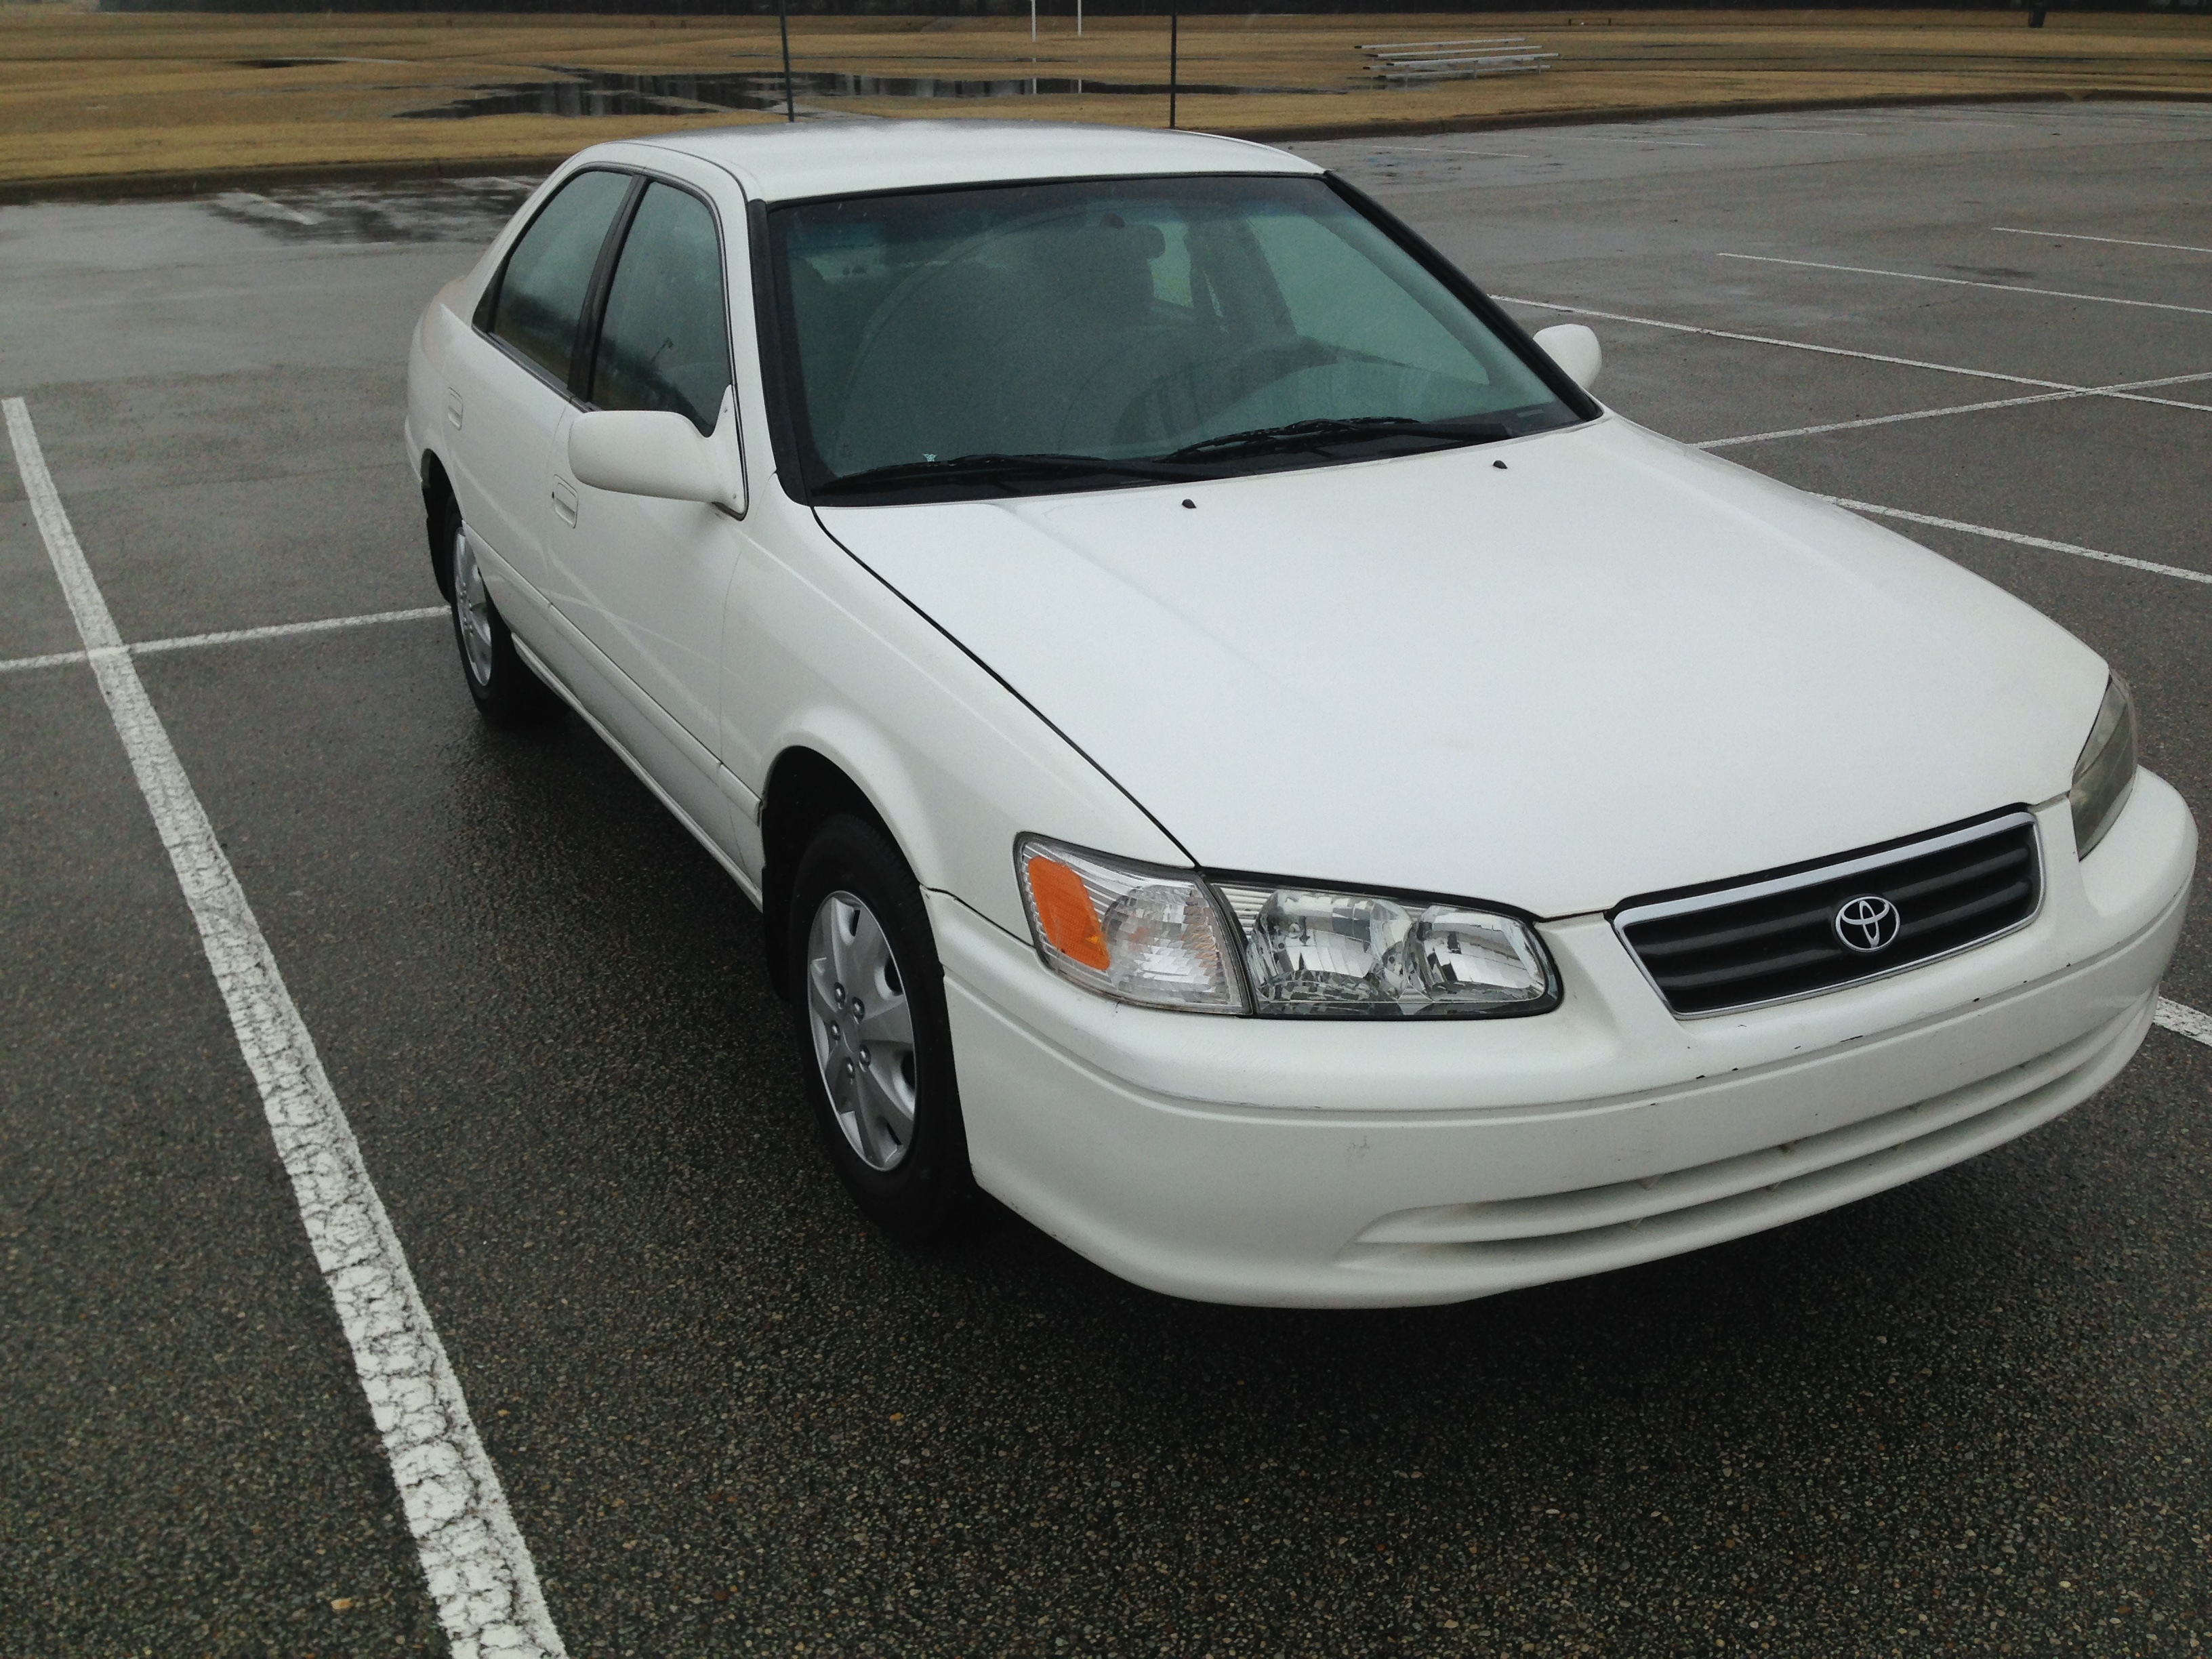 2014 Silver Camry >> White 2000 Toyota Camry (SOLD) | J & L Auto Sales